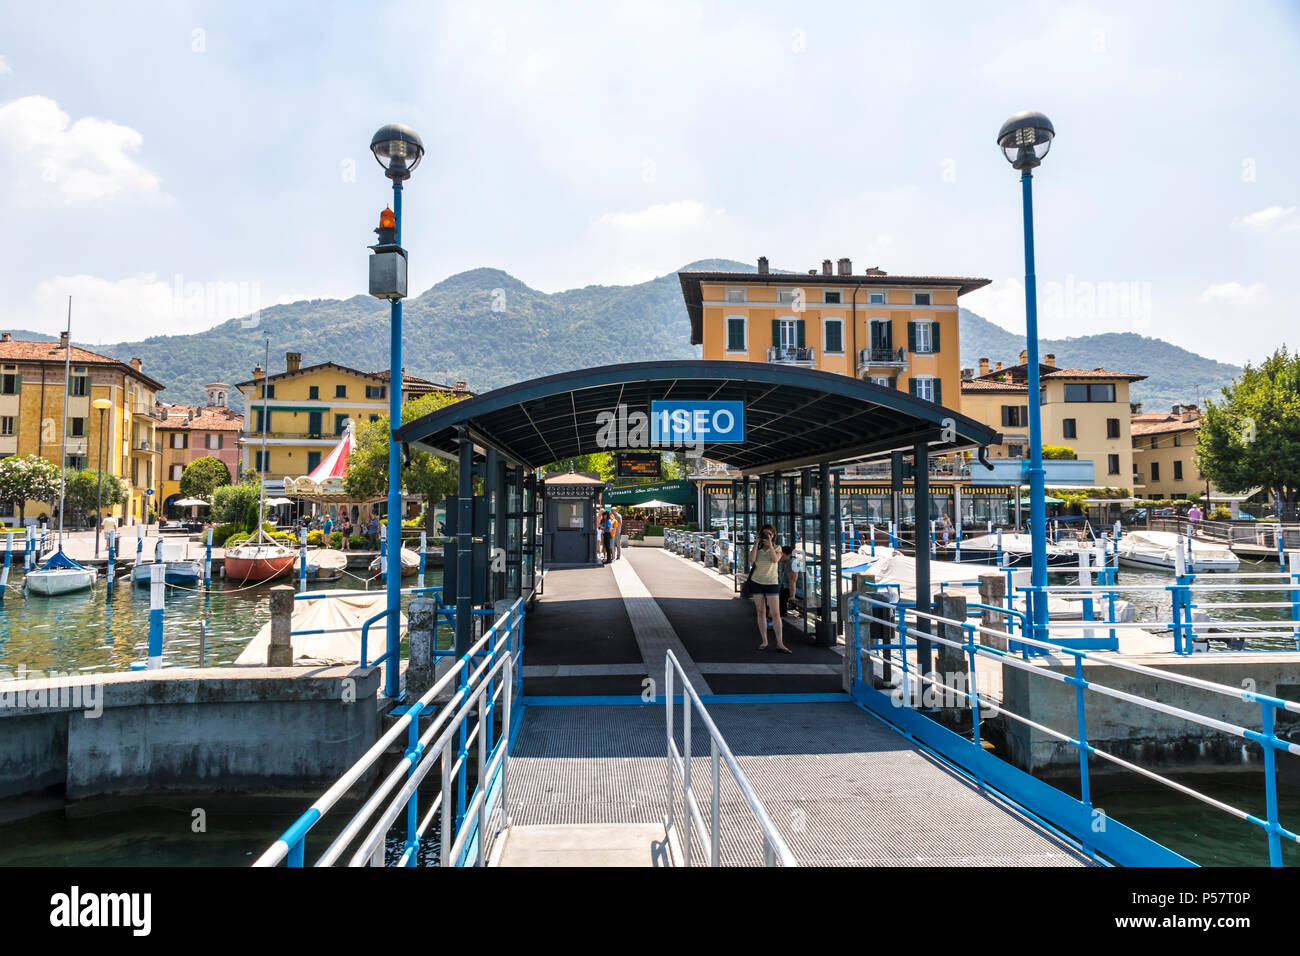 Ferry station on Iseo lake (Lago d'Iseo) in Iseo city, Lombardy, Italy. View to the city from the pier. Iseo is a famous Italian resort - Stock Image